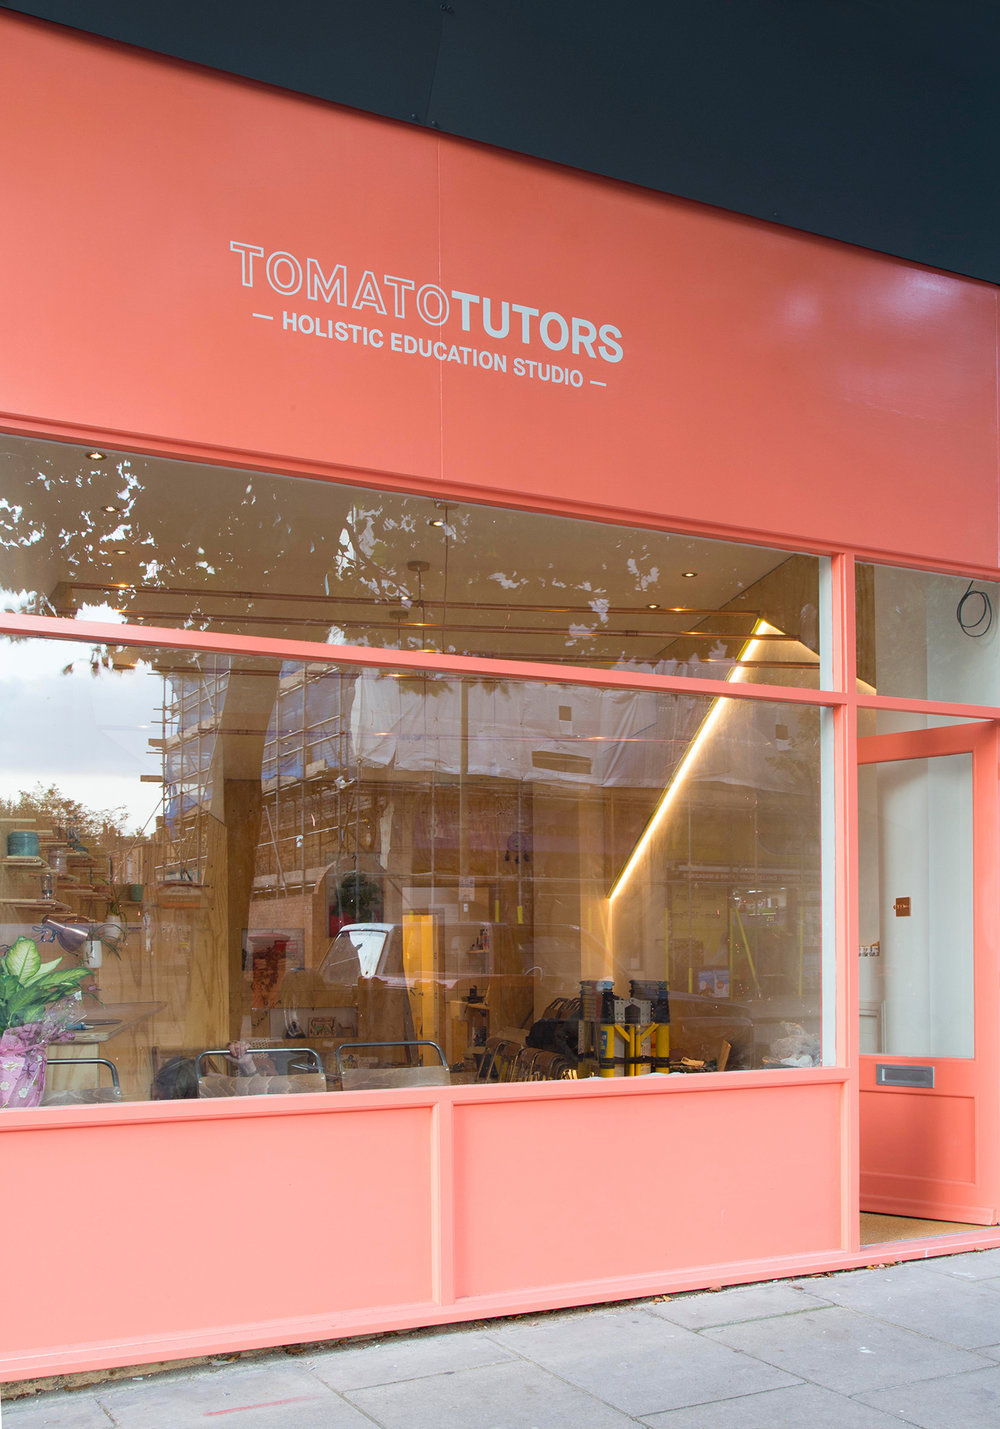 All Works Co._Graphic_Design_Studio_London_TomatoTutors_Identity_Studio